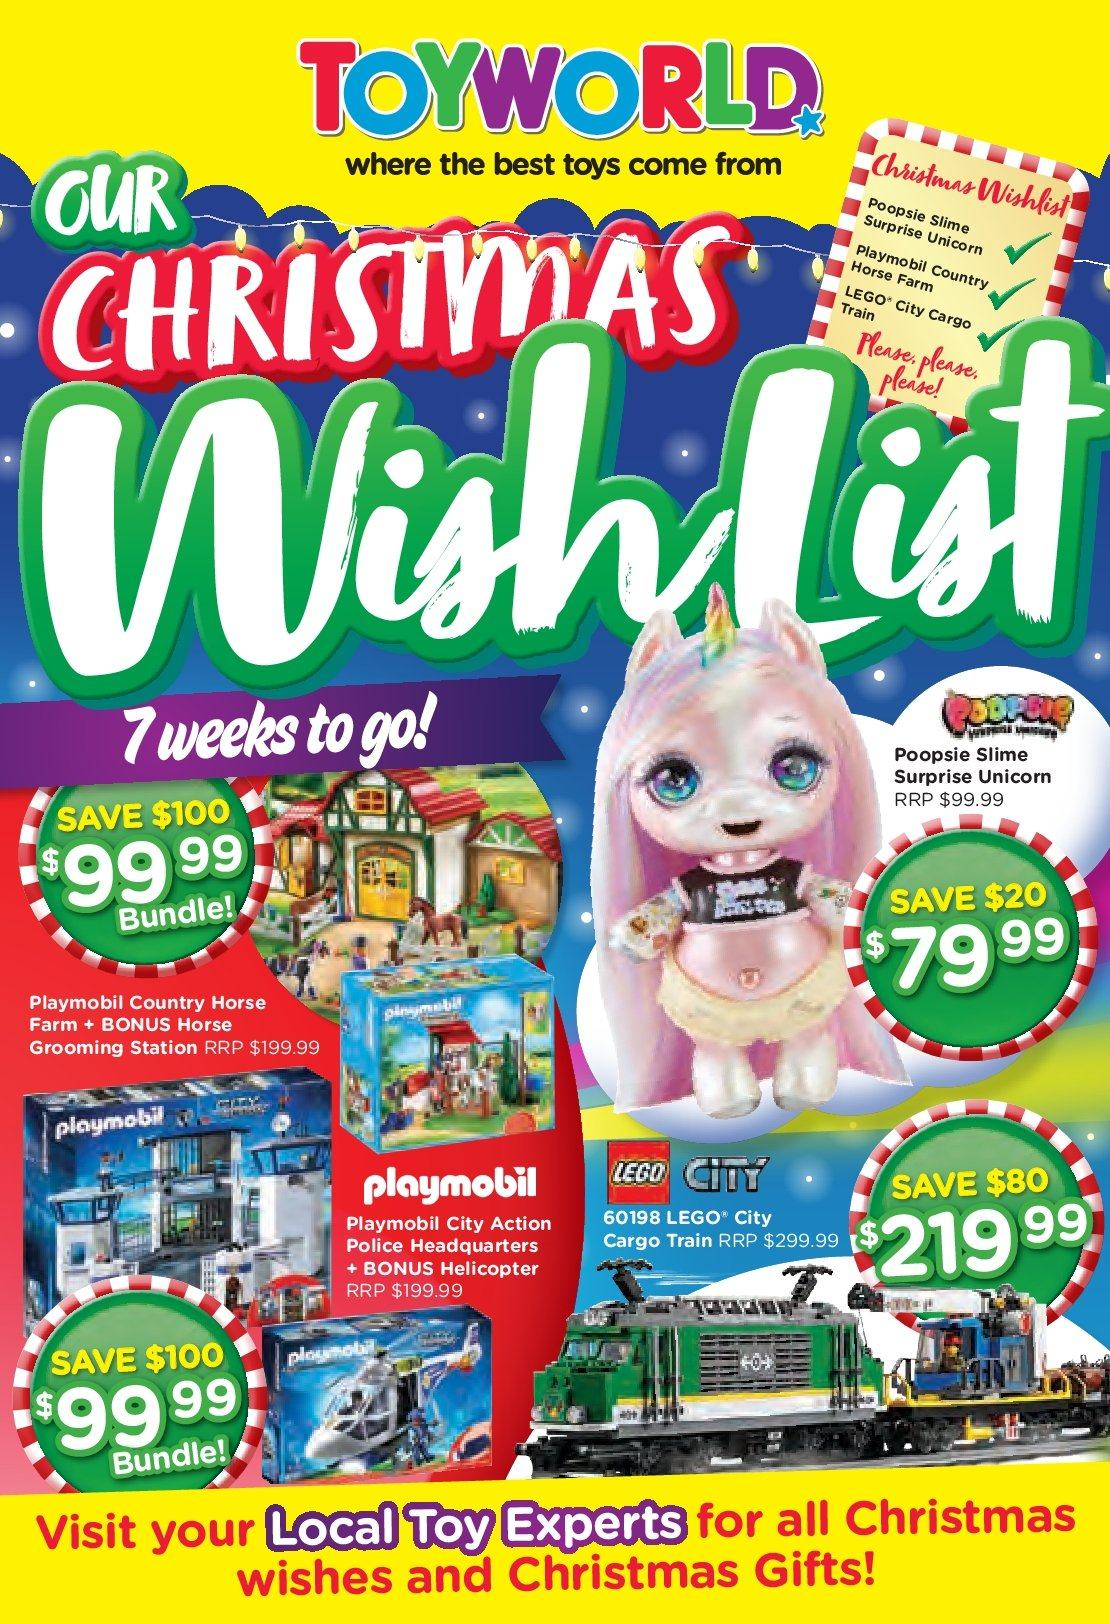 Toyworld catalogue and weekly specials 6 11 2018 - 25 11 2018 | Au